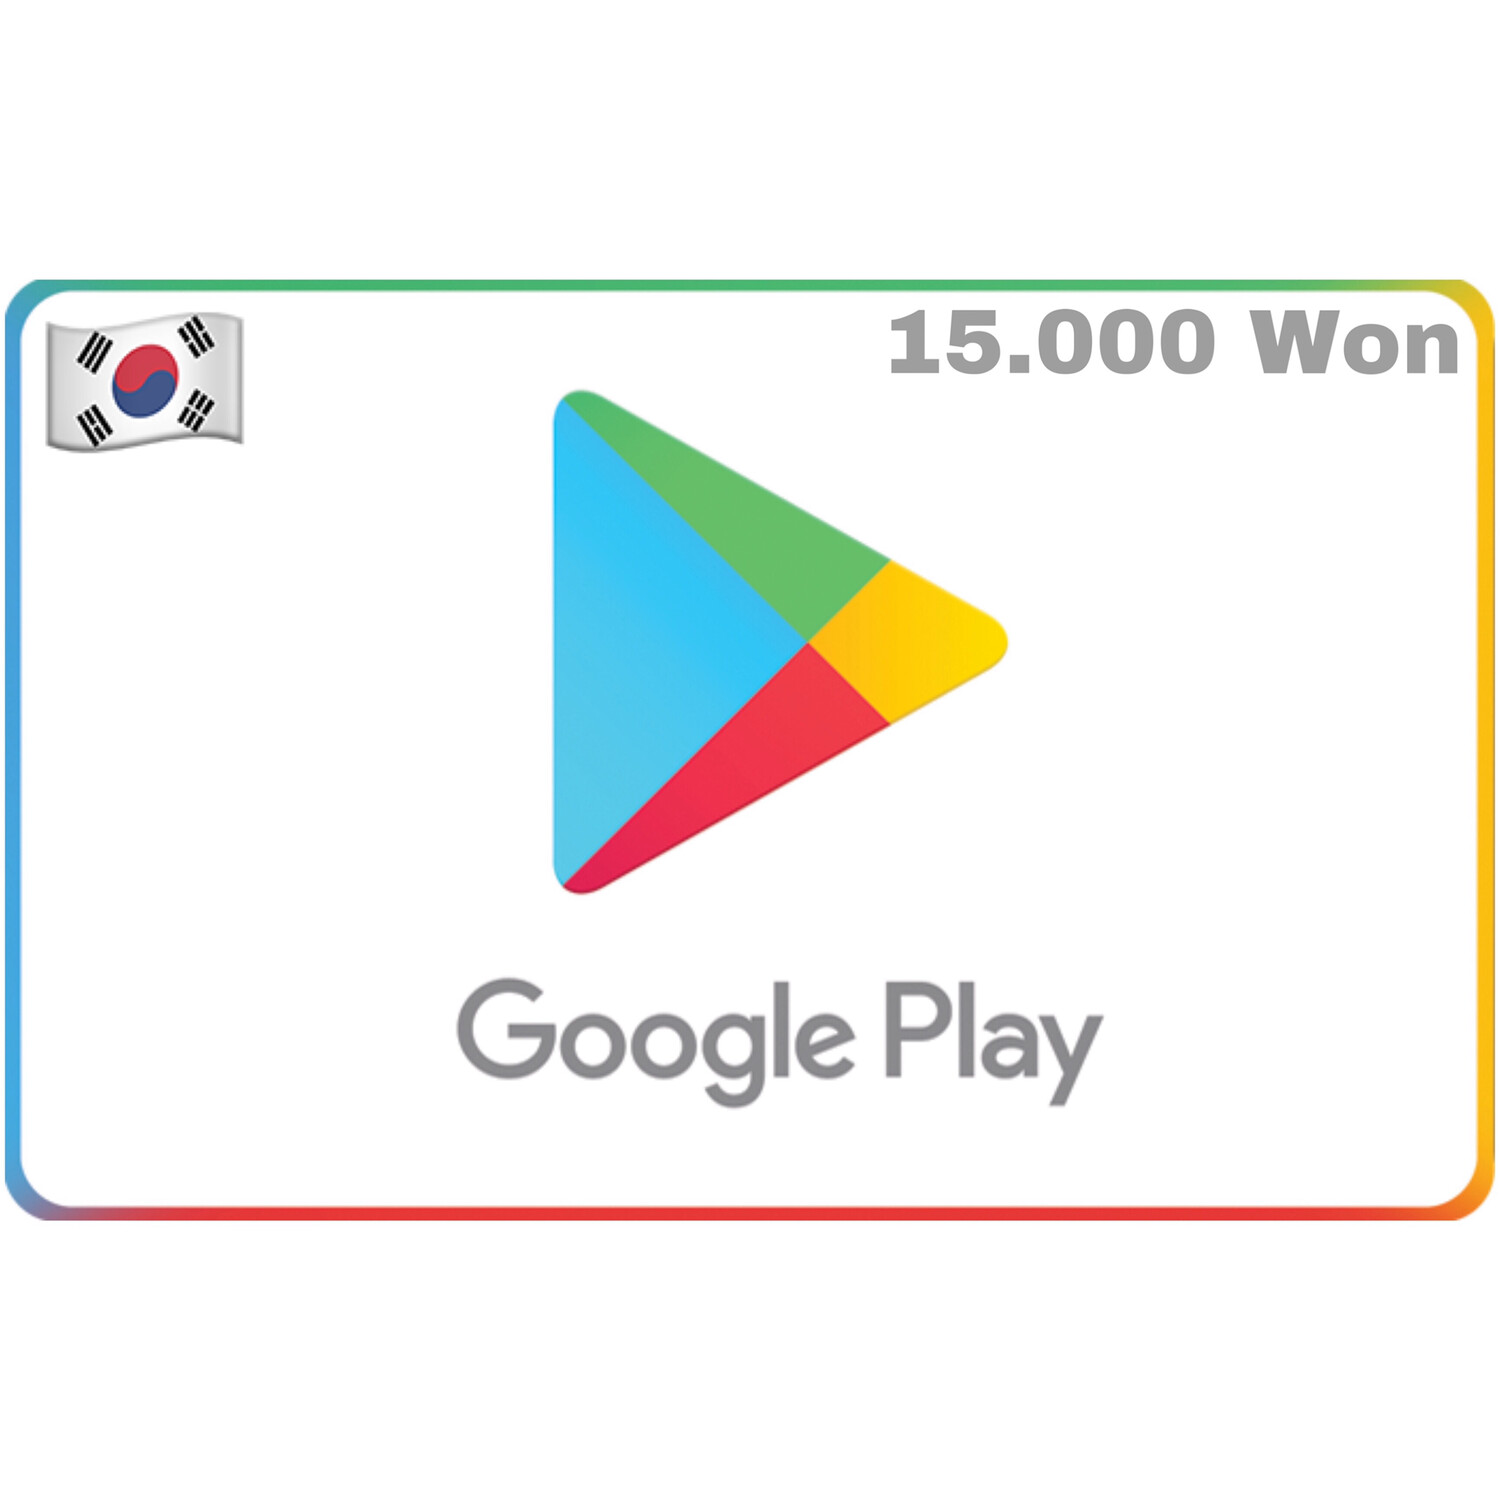 Google Play Korea 15,000 Won